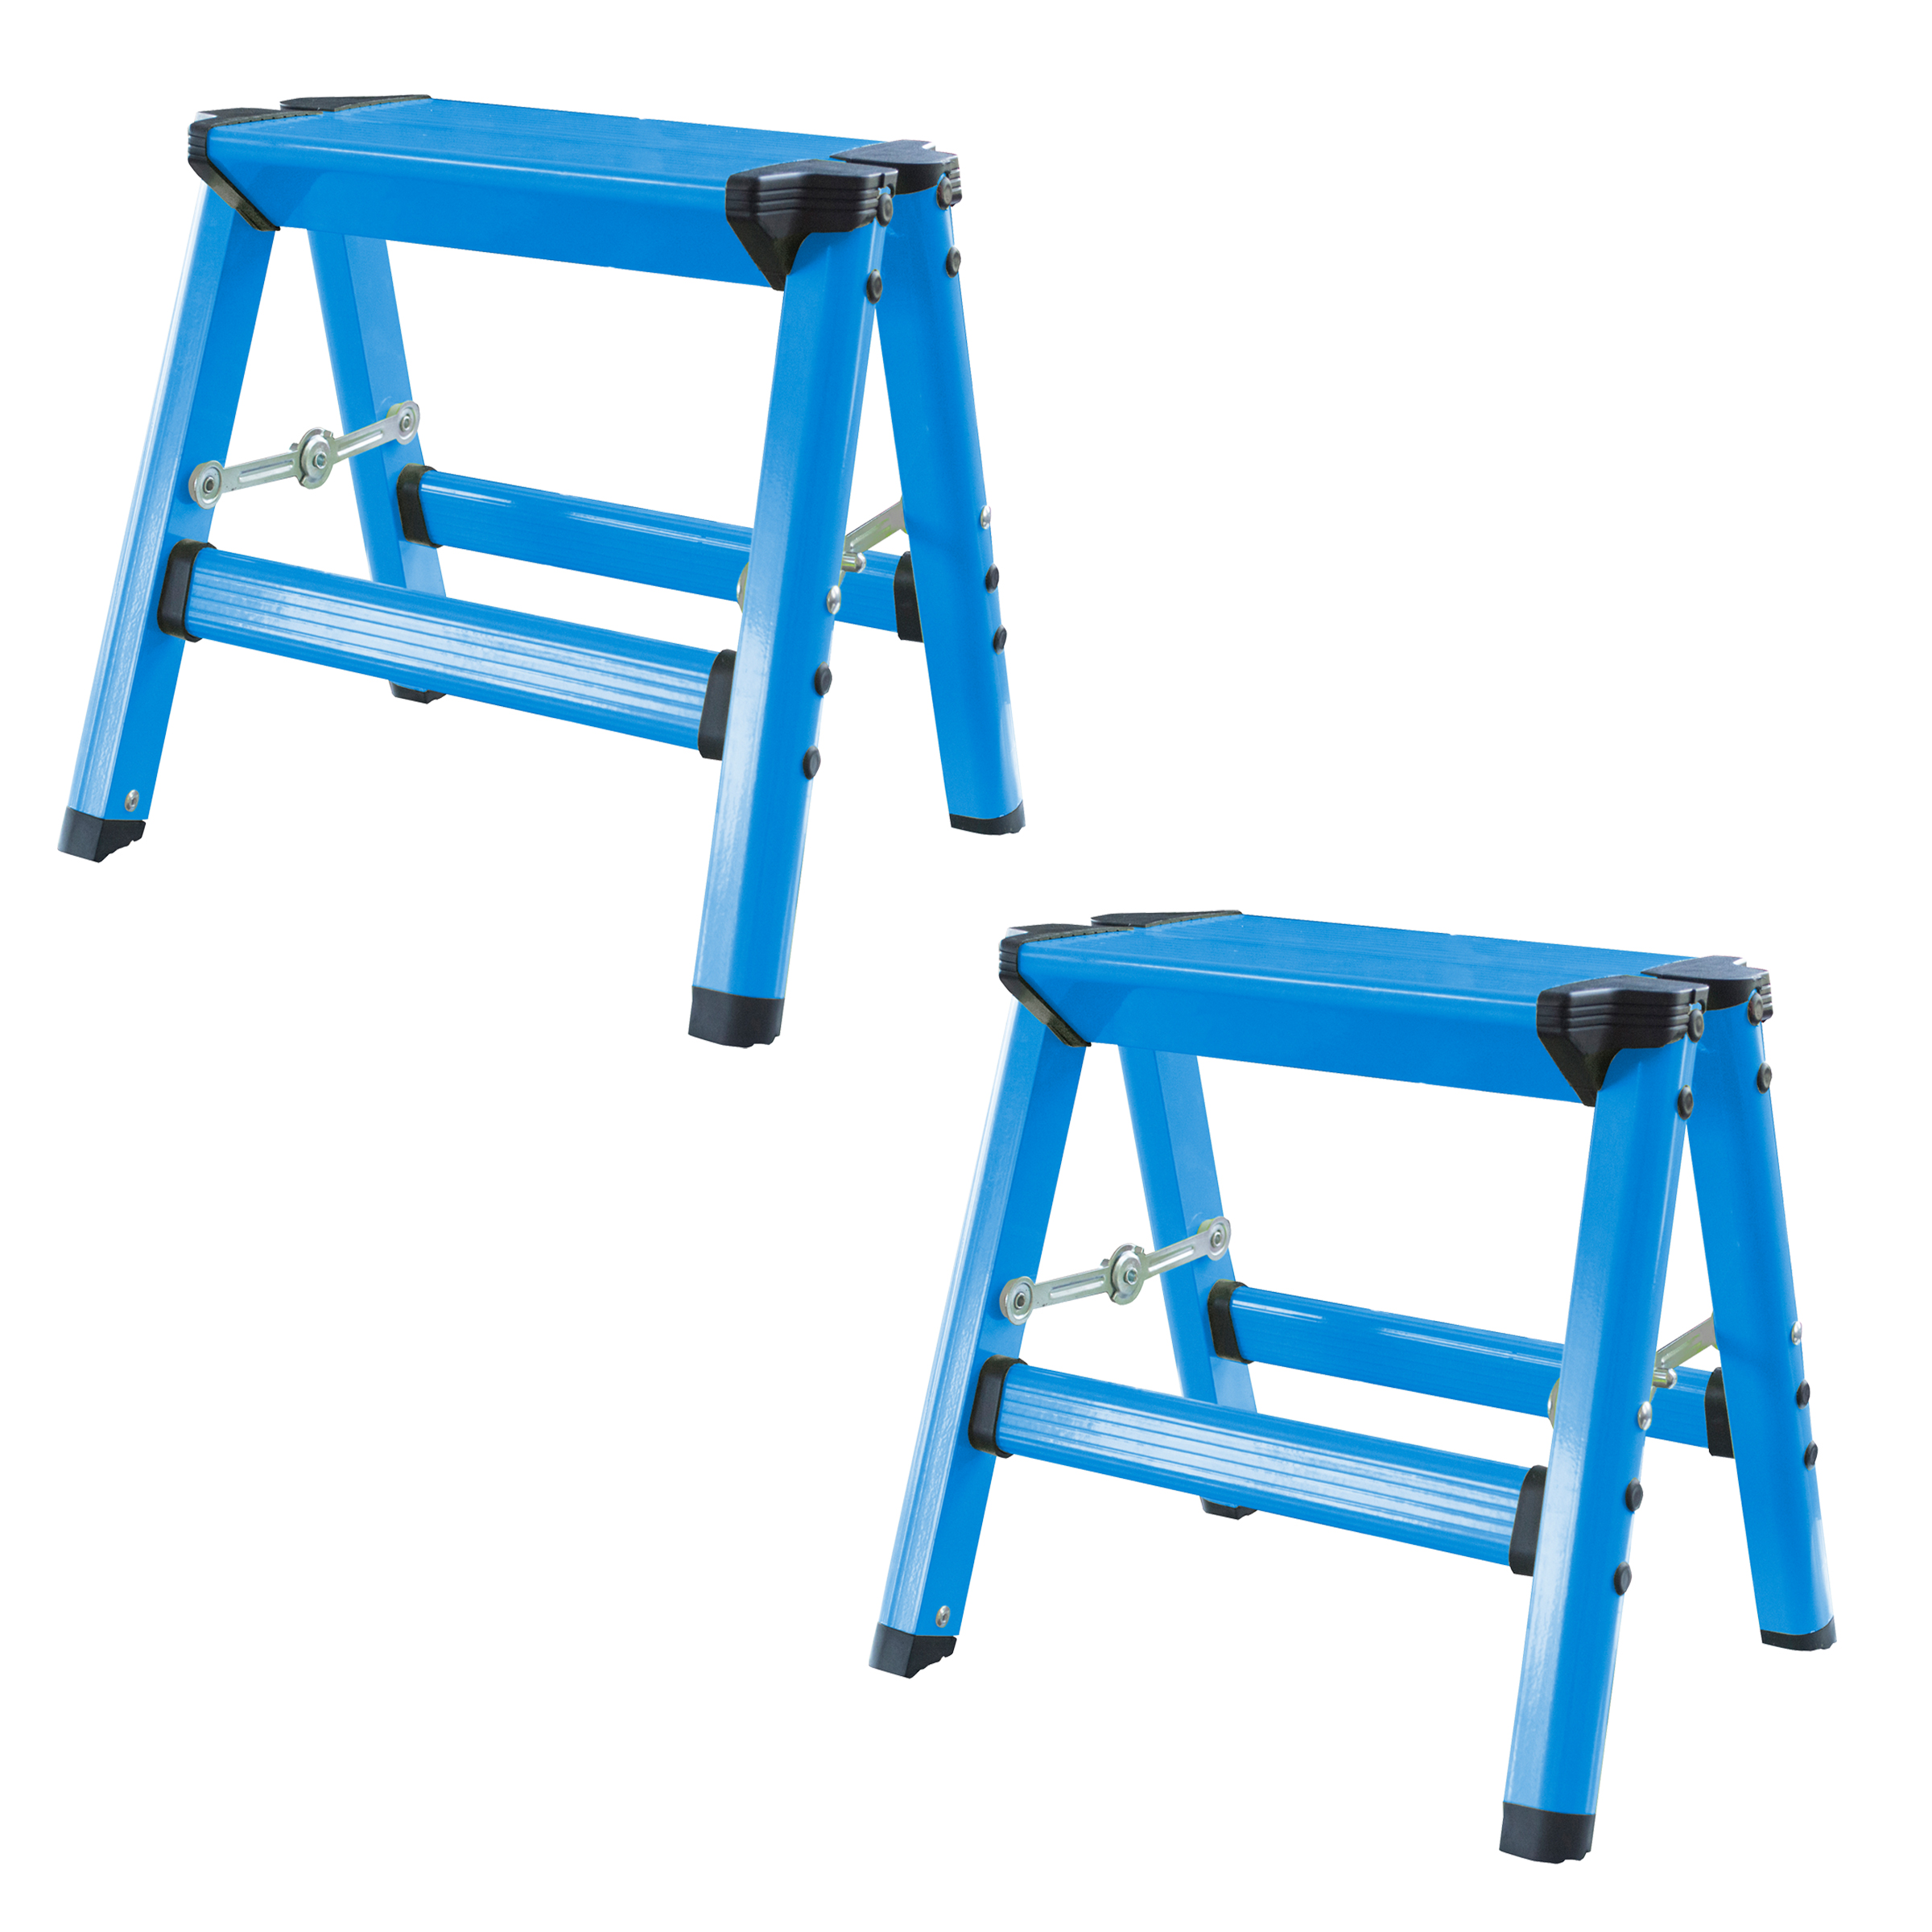 AmeriHome Lightweight Single Step Aluminum Step Stool 2 Piece Set  - Bright Blue